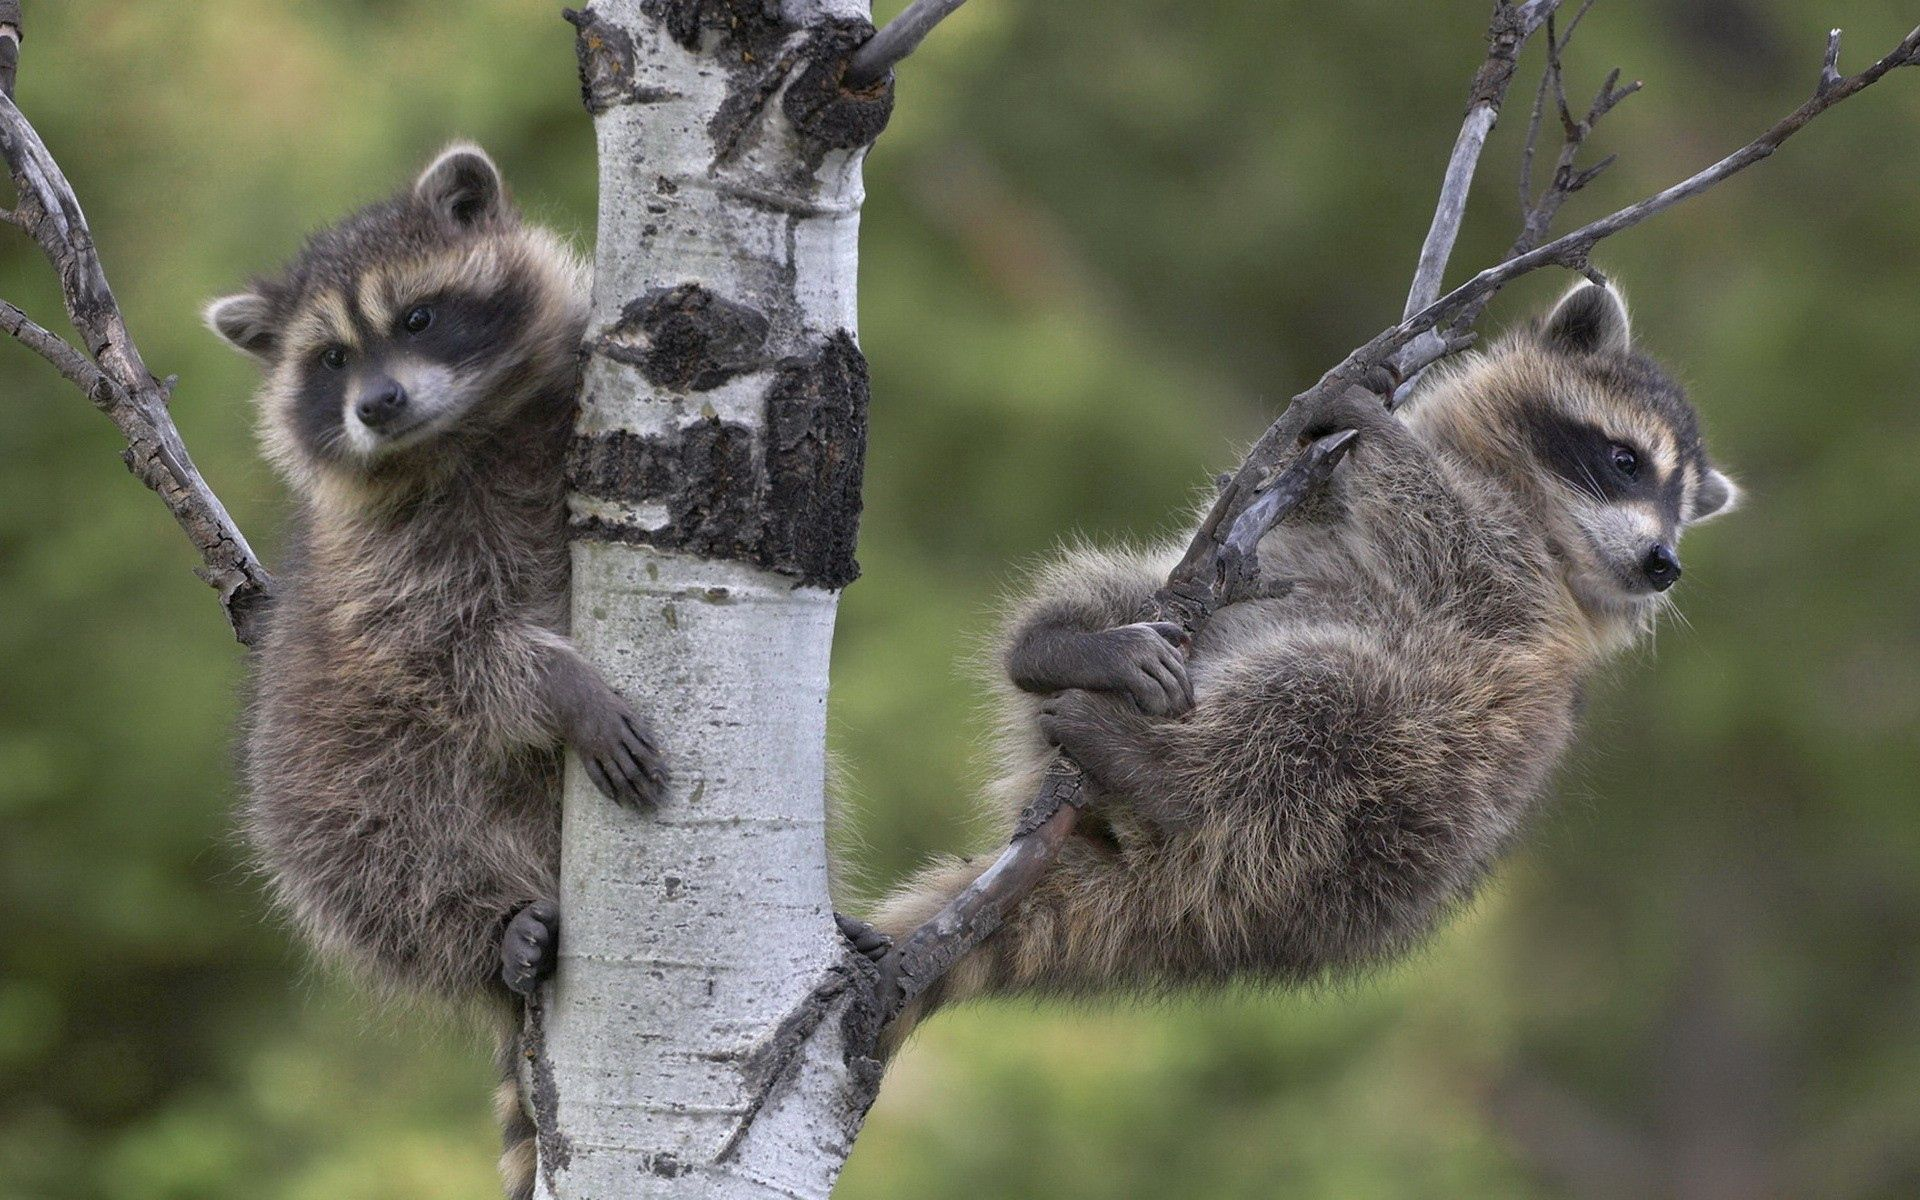 64319 download wallpaper Animals, Raccoons, Wood, Sit, Couple, Pair, Tree, Branches screensavers and pictures for free